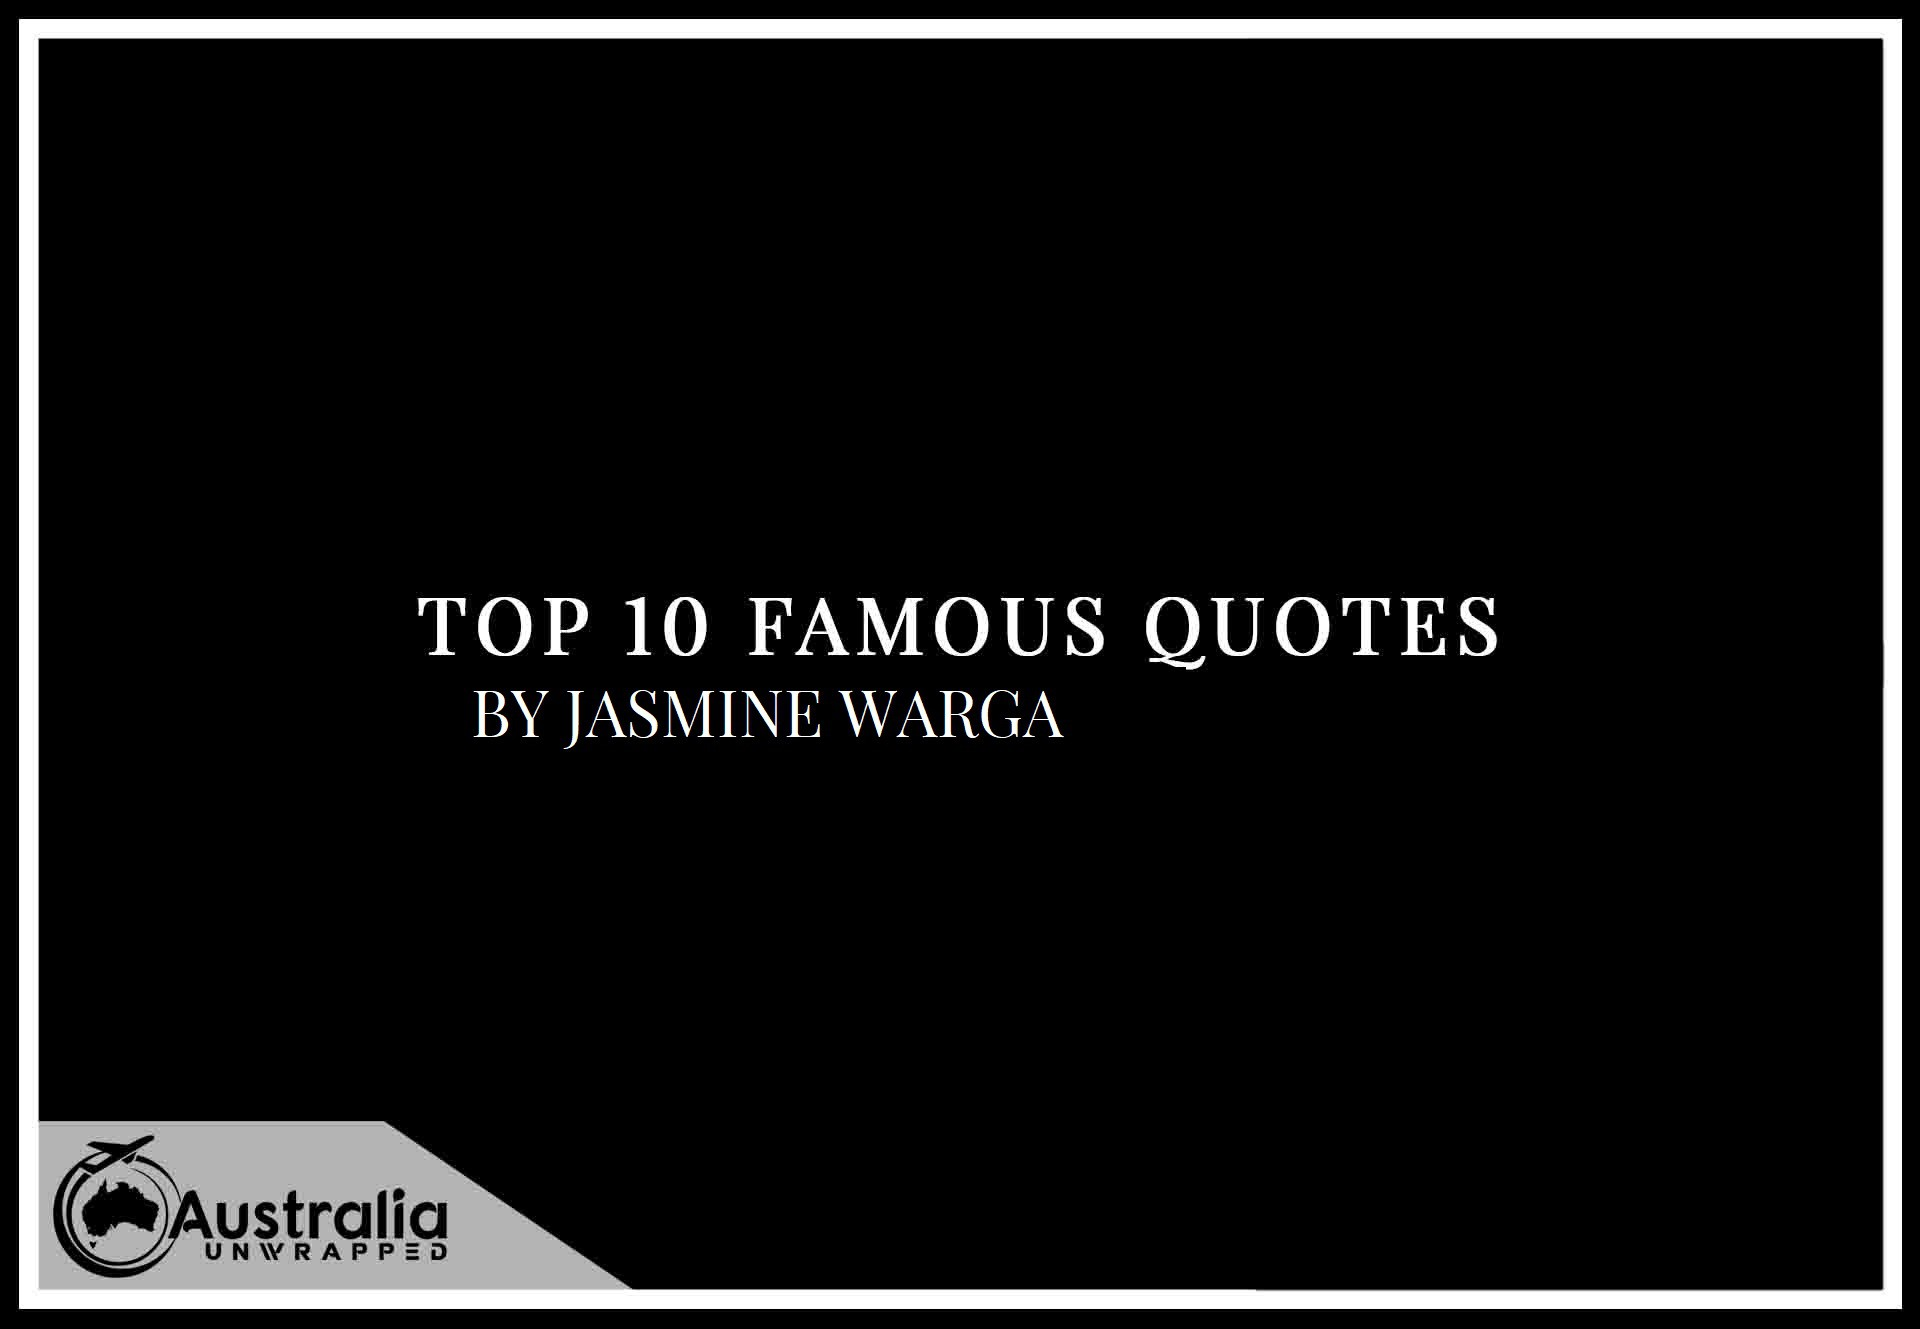 Top 10 Famous Quotes by Author Jasmine Warga